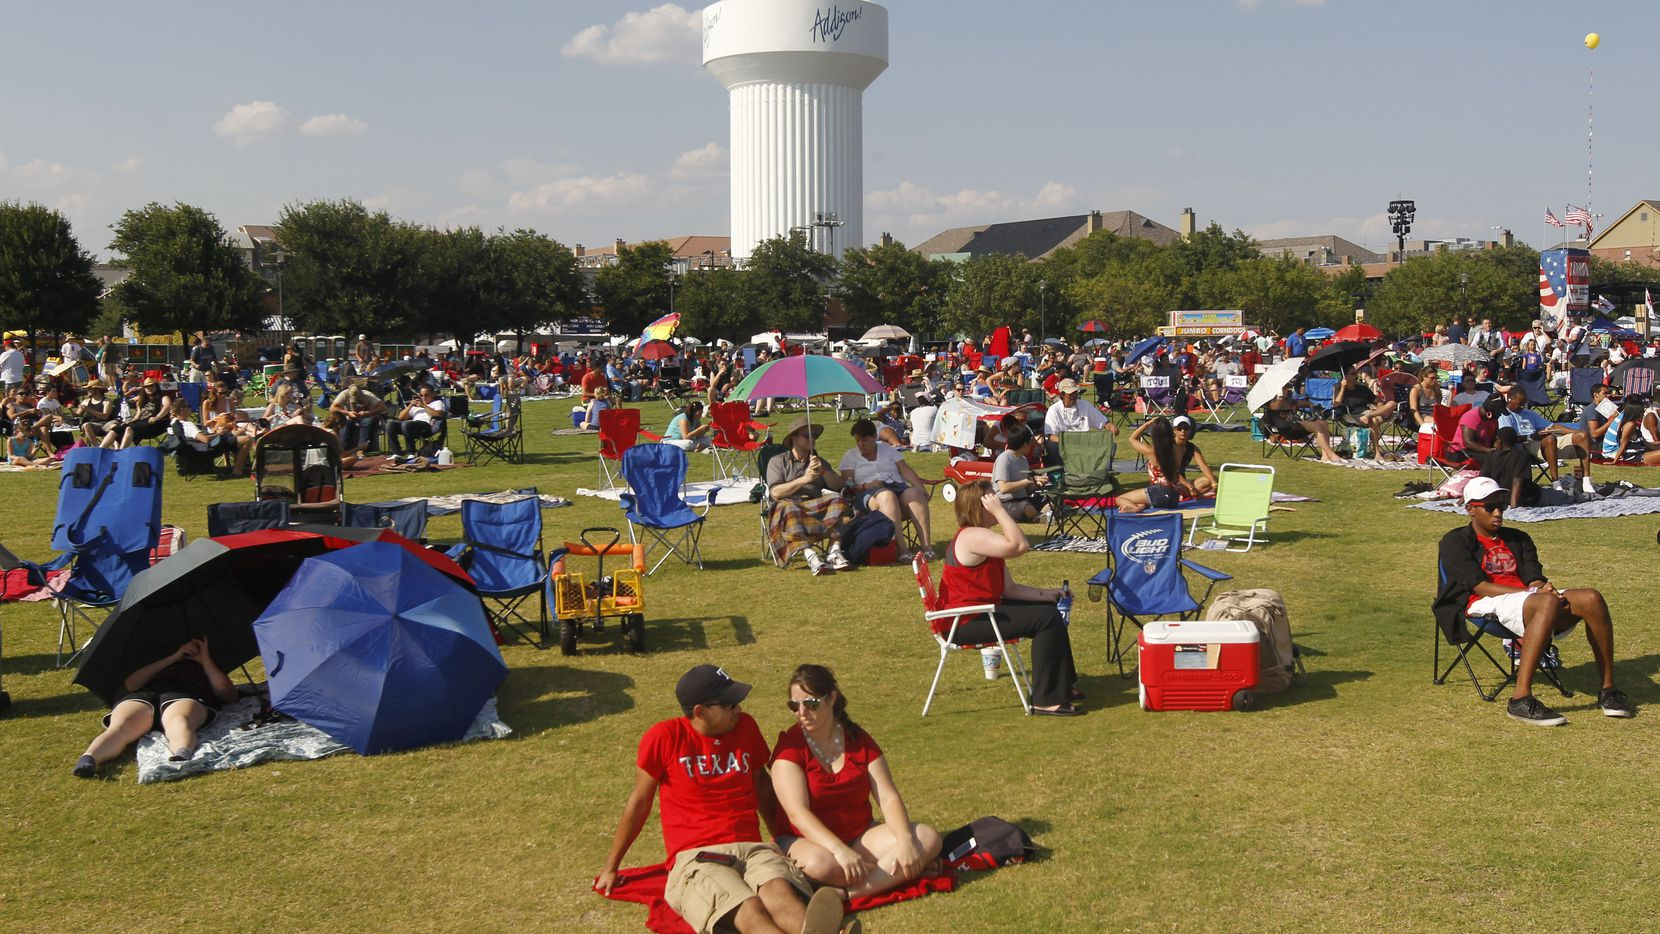 People prepare their viewing spots during the Kaboom Town Fourth of July celebration on Wednesday, July 3, 2013, at Addison Circle Park in Addison, Texas.  (AP Photo/The Dallas Morning News, Michael Ainsworth)